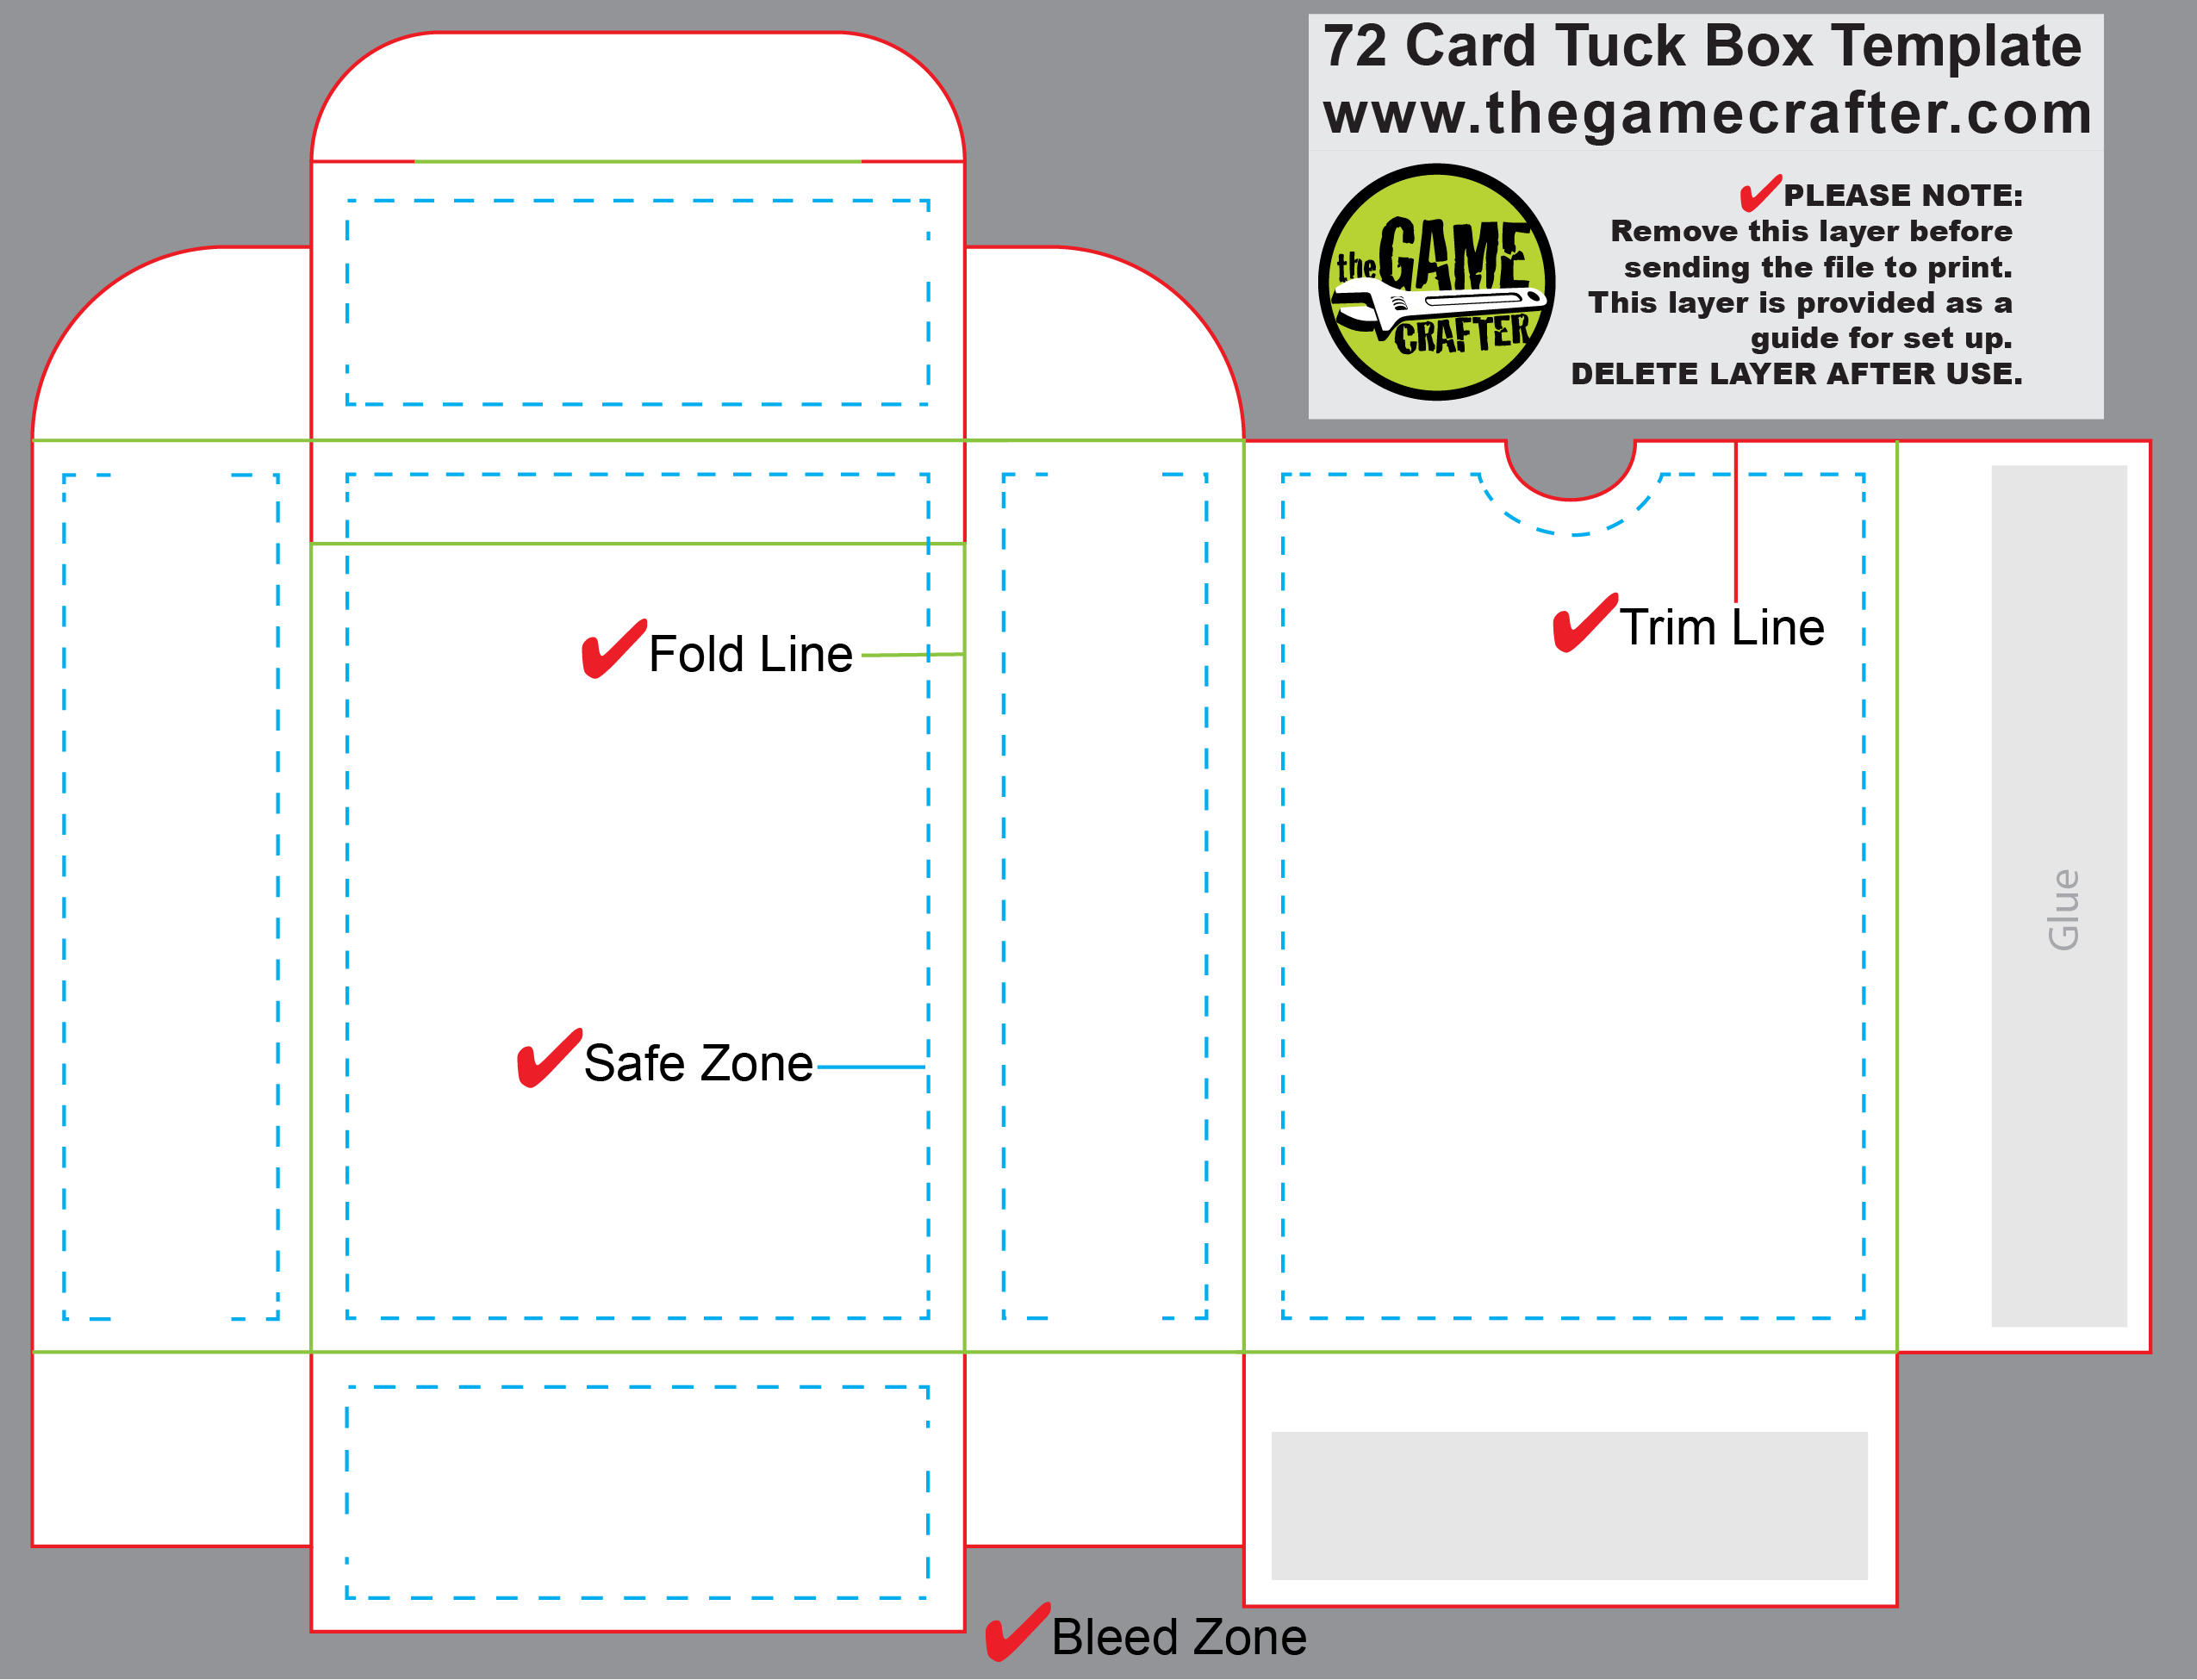 card box template generator 28 images tuck box 72 cards